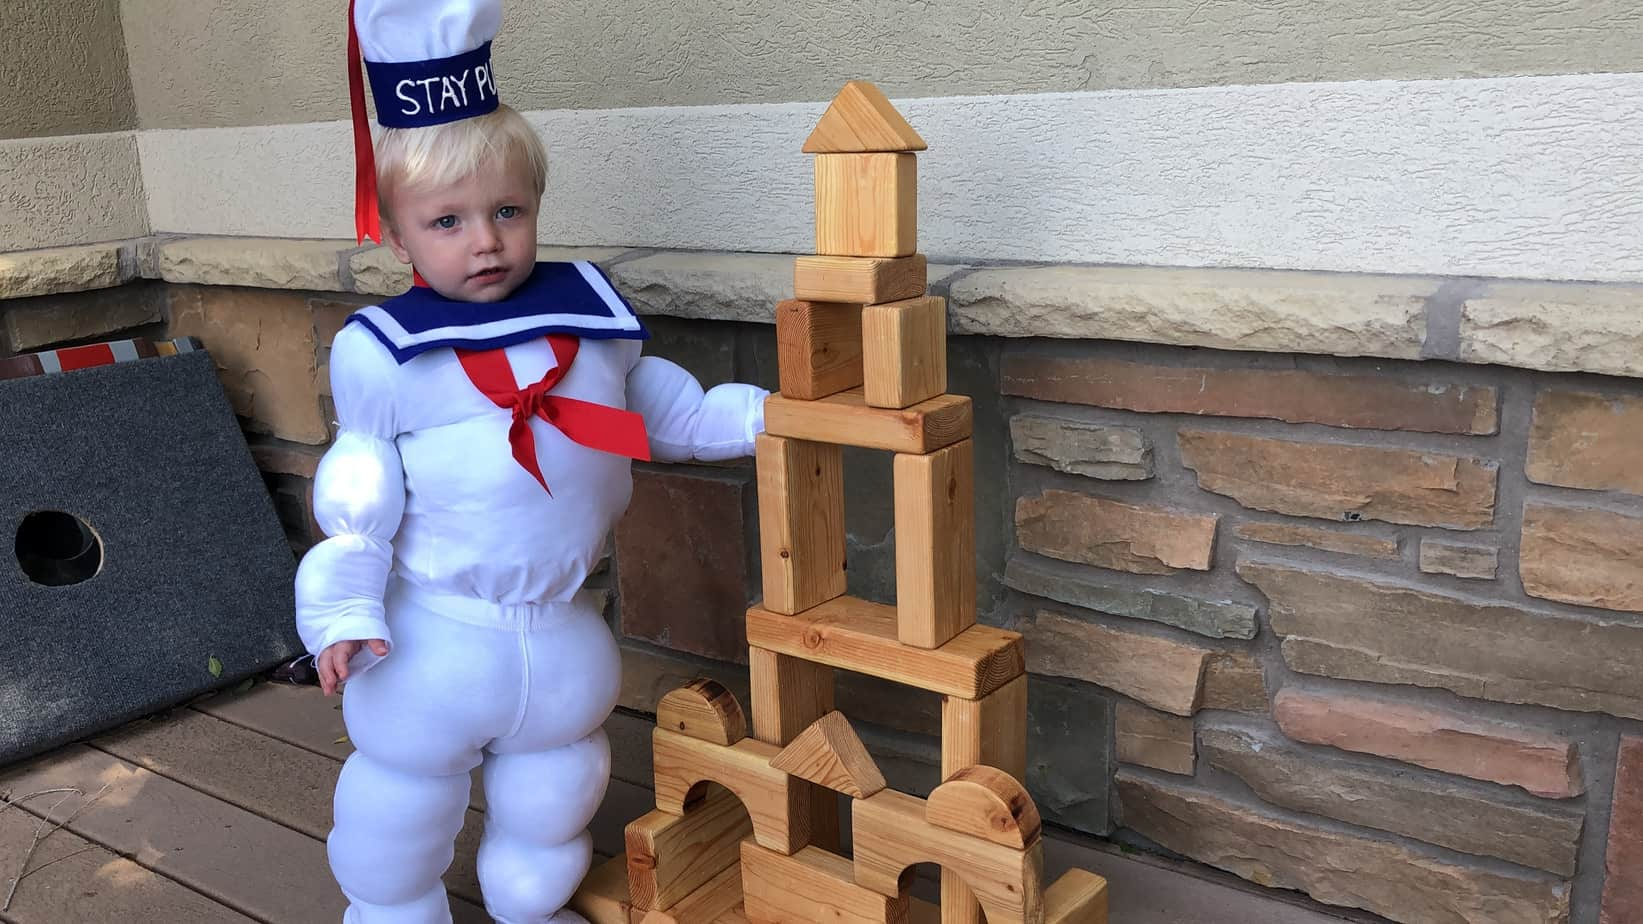 DIY Stay Puft Marshmallow Man Costume, A Complete Step by Step Tutorial